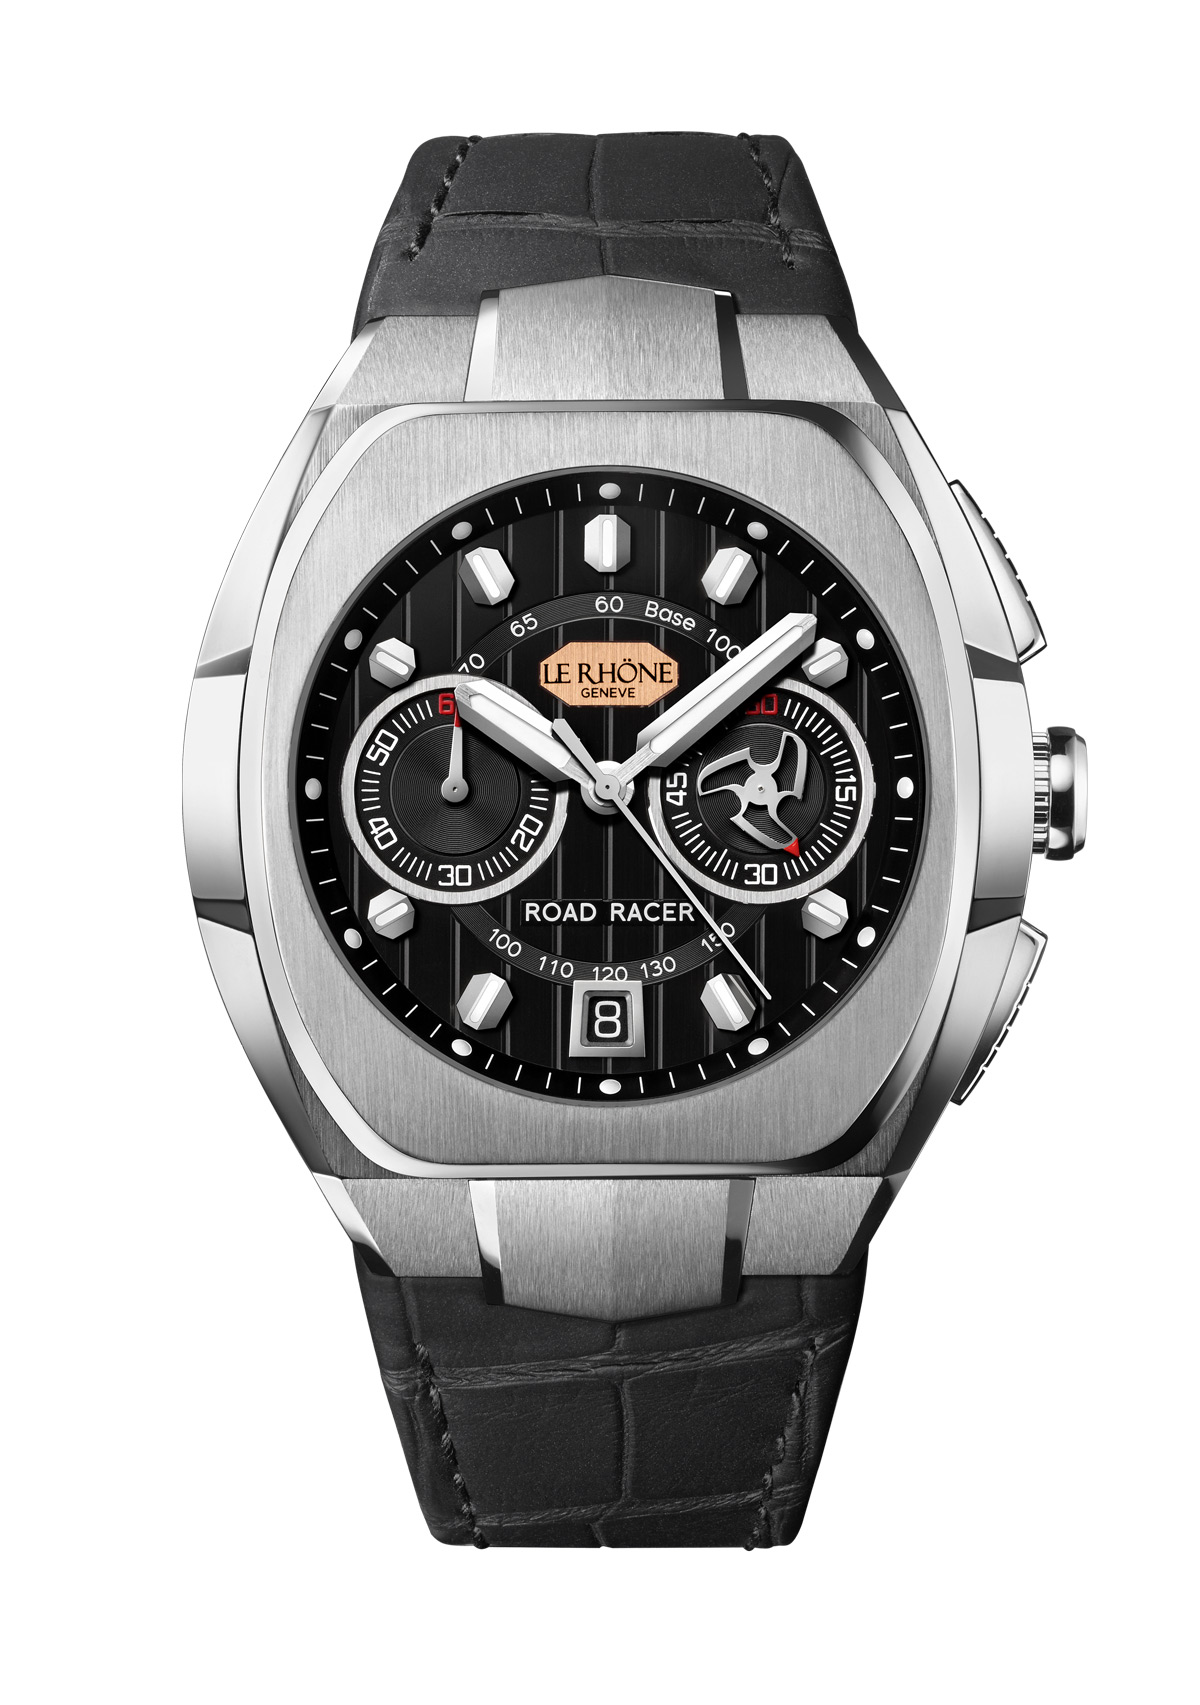 road-racer-le-rhone-watch-R1SS351-1-A99D-